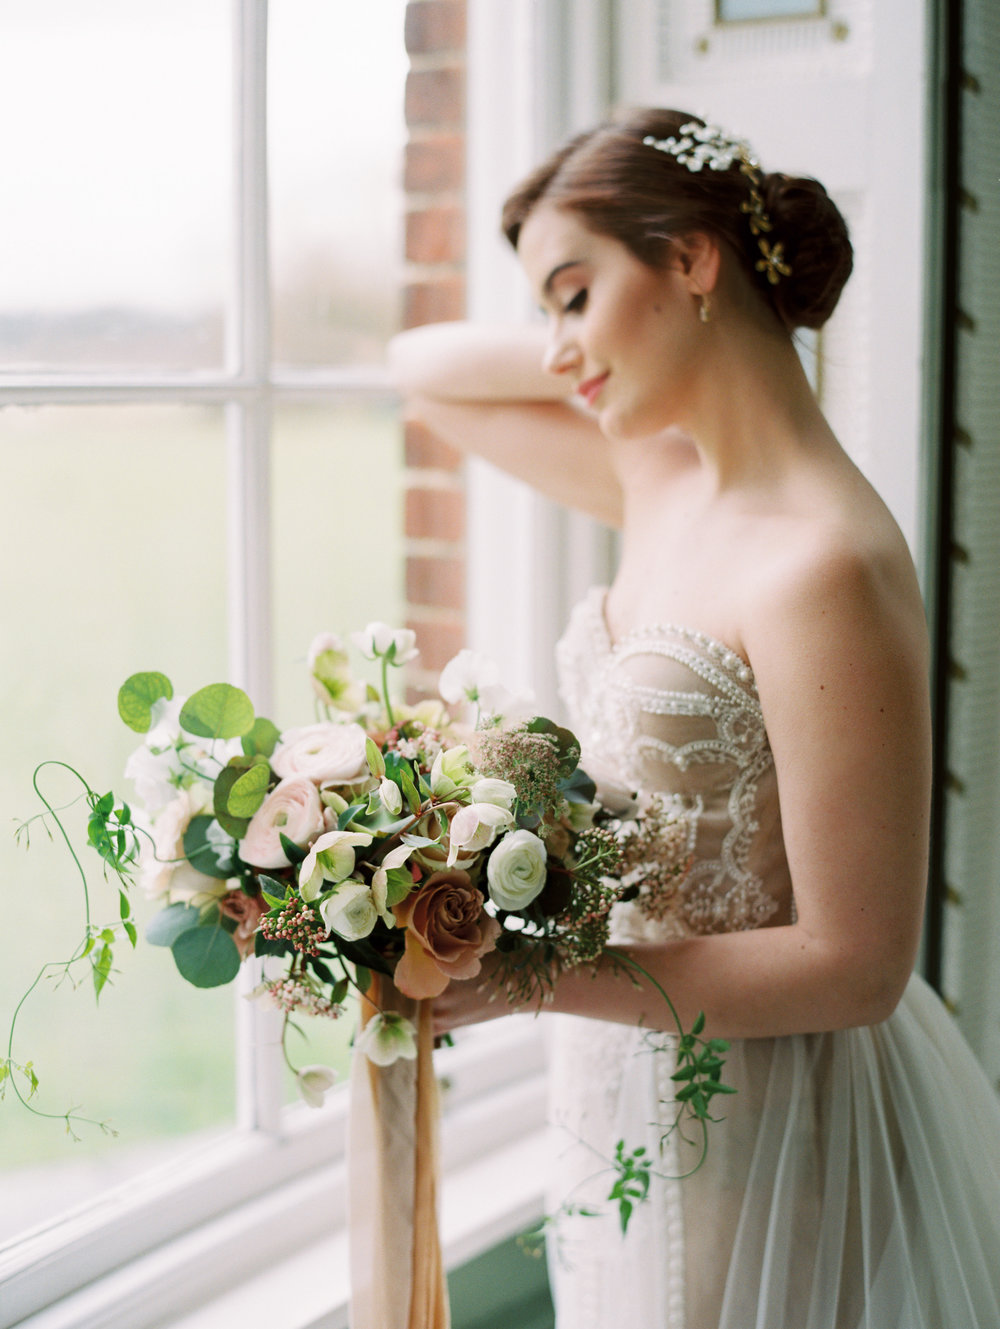 The Timeless Stylist-Neutral Fine Art Wedding Design and Styling